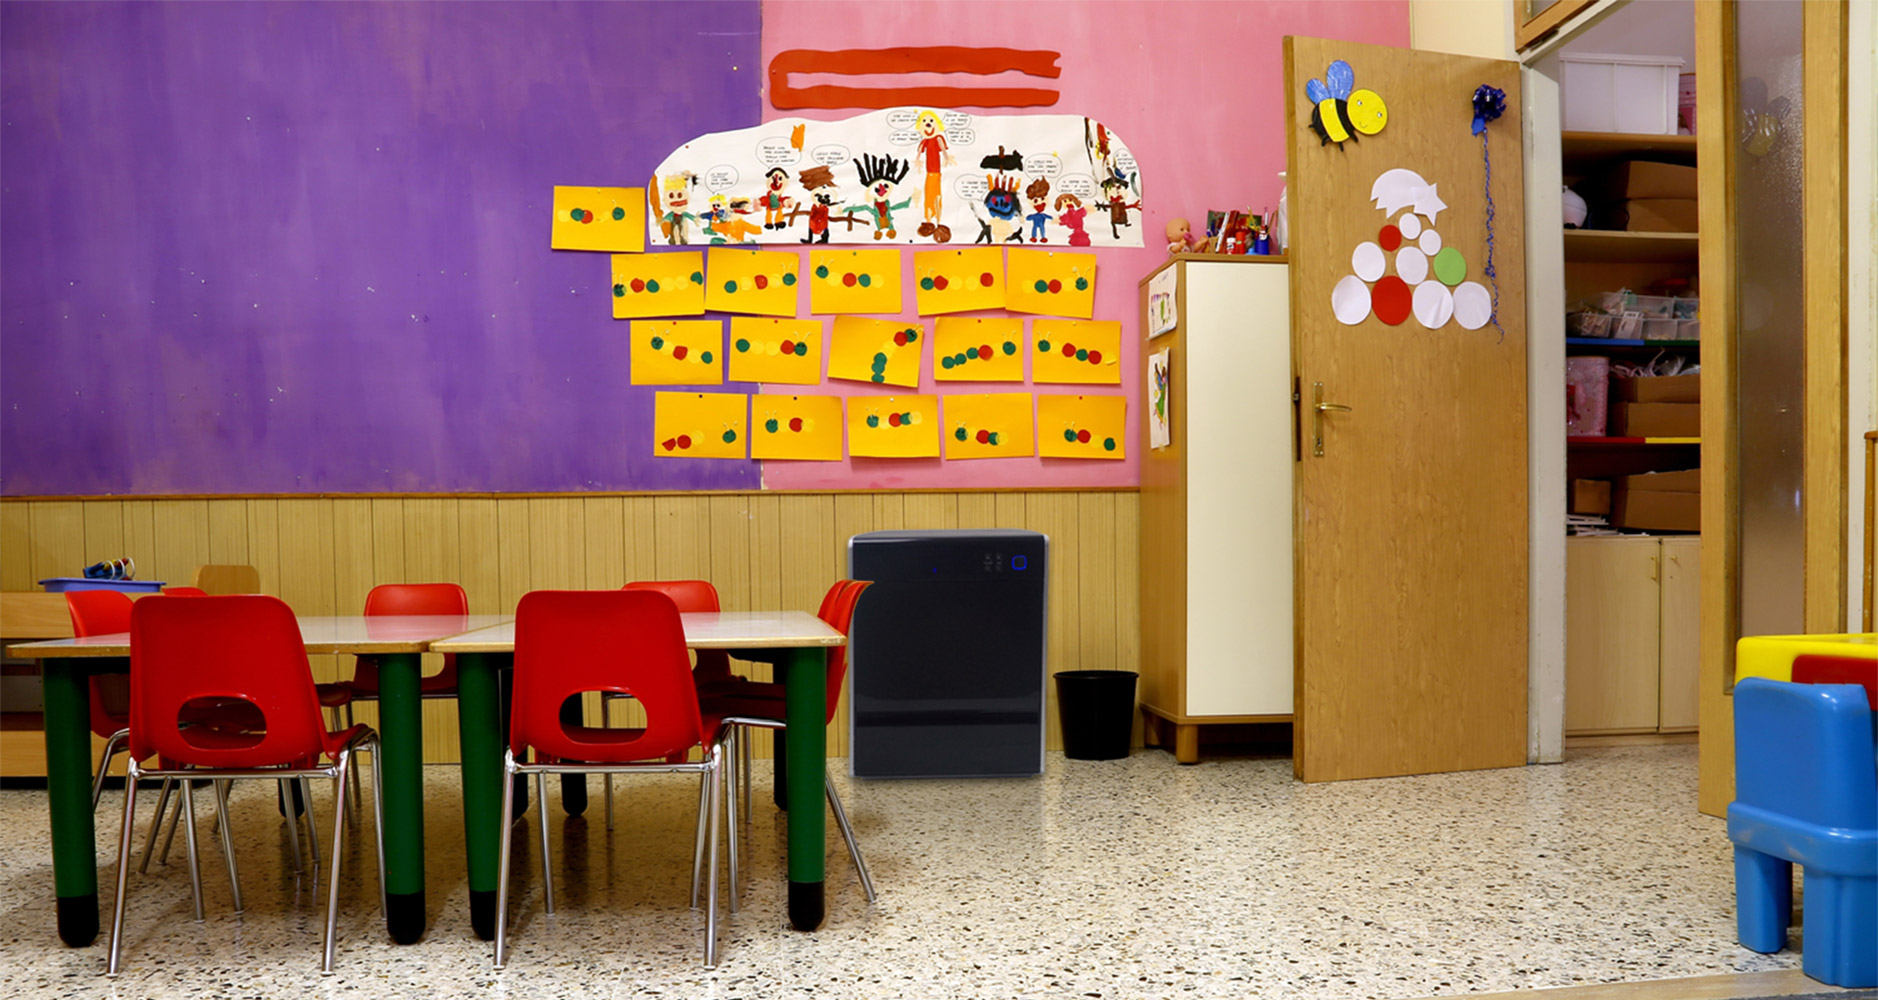 LIFE CELL 2500 in a daycare